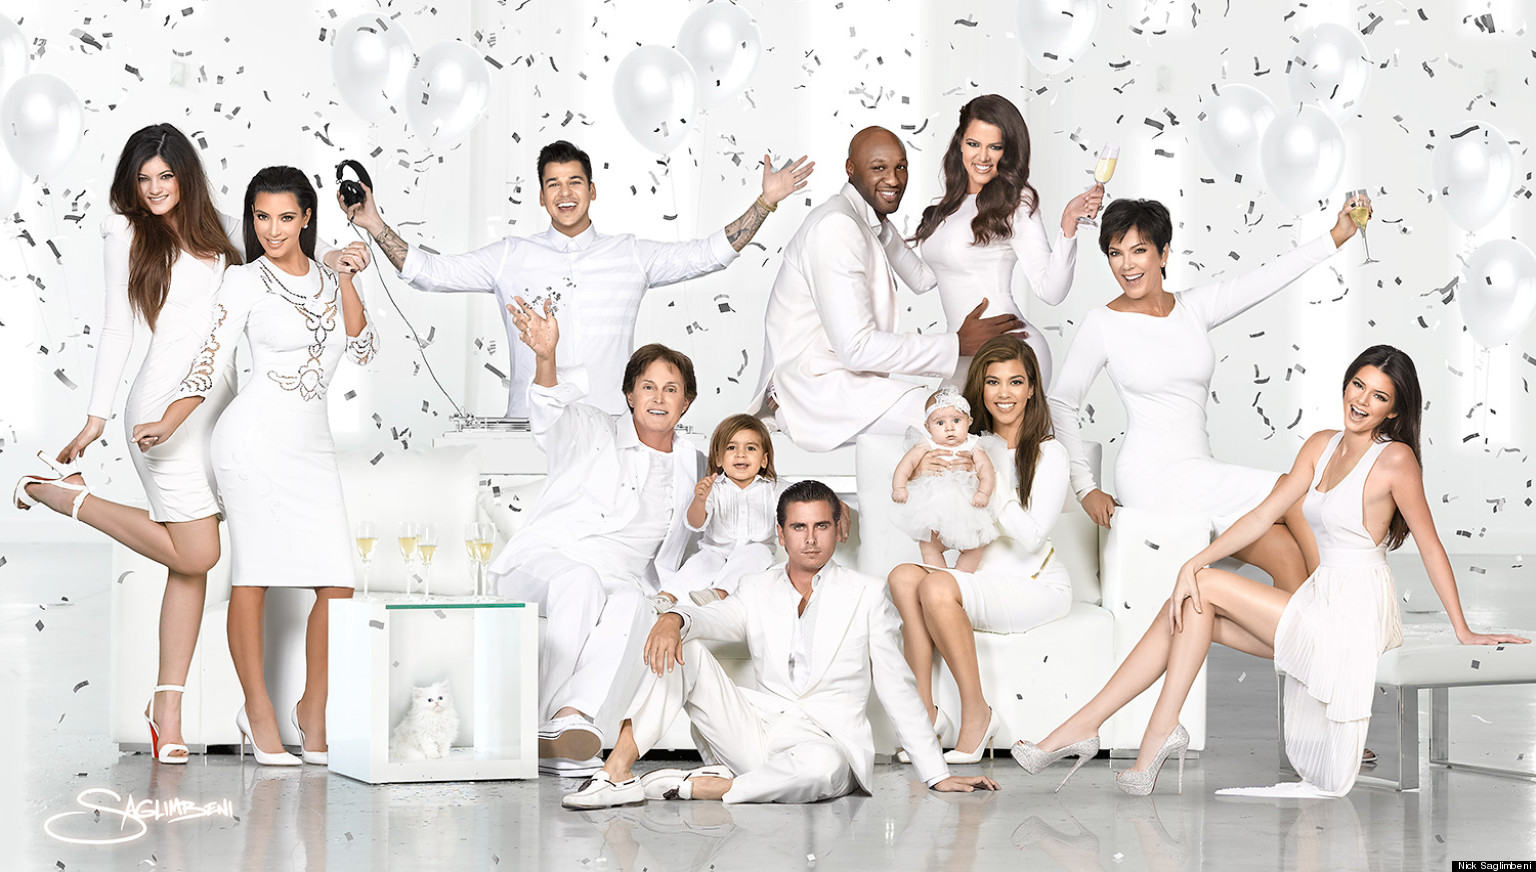 Kardashian Christmas Card 2012: Reality TV Family Release Annual ...